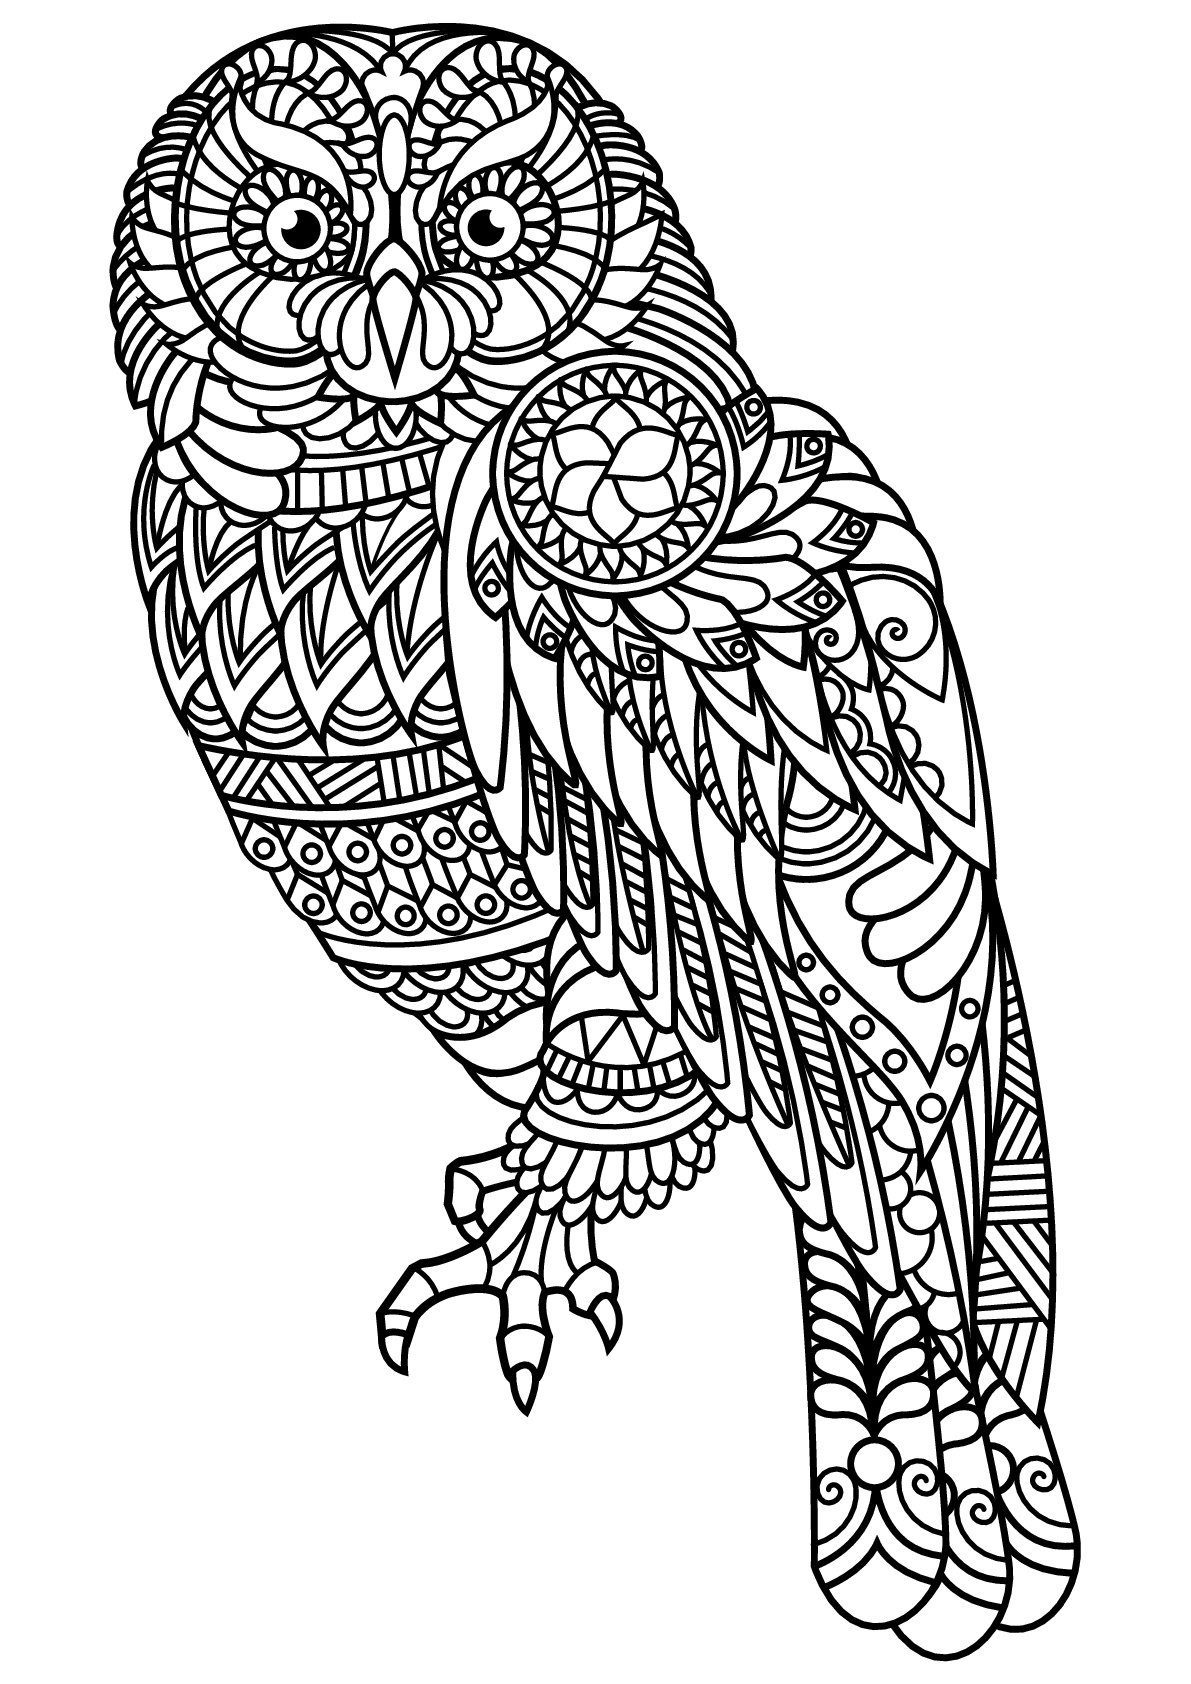 owl coloring pics baby owl coloring pages getcoloringpagescom pics coloring owl